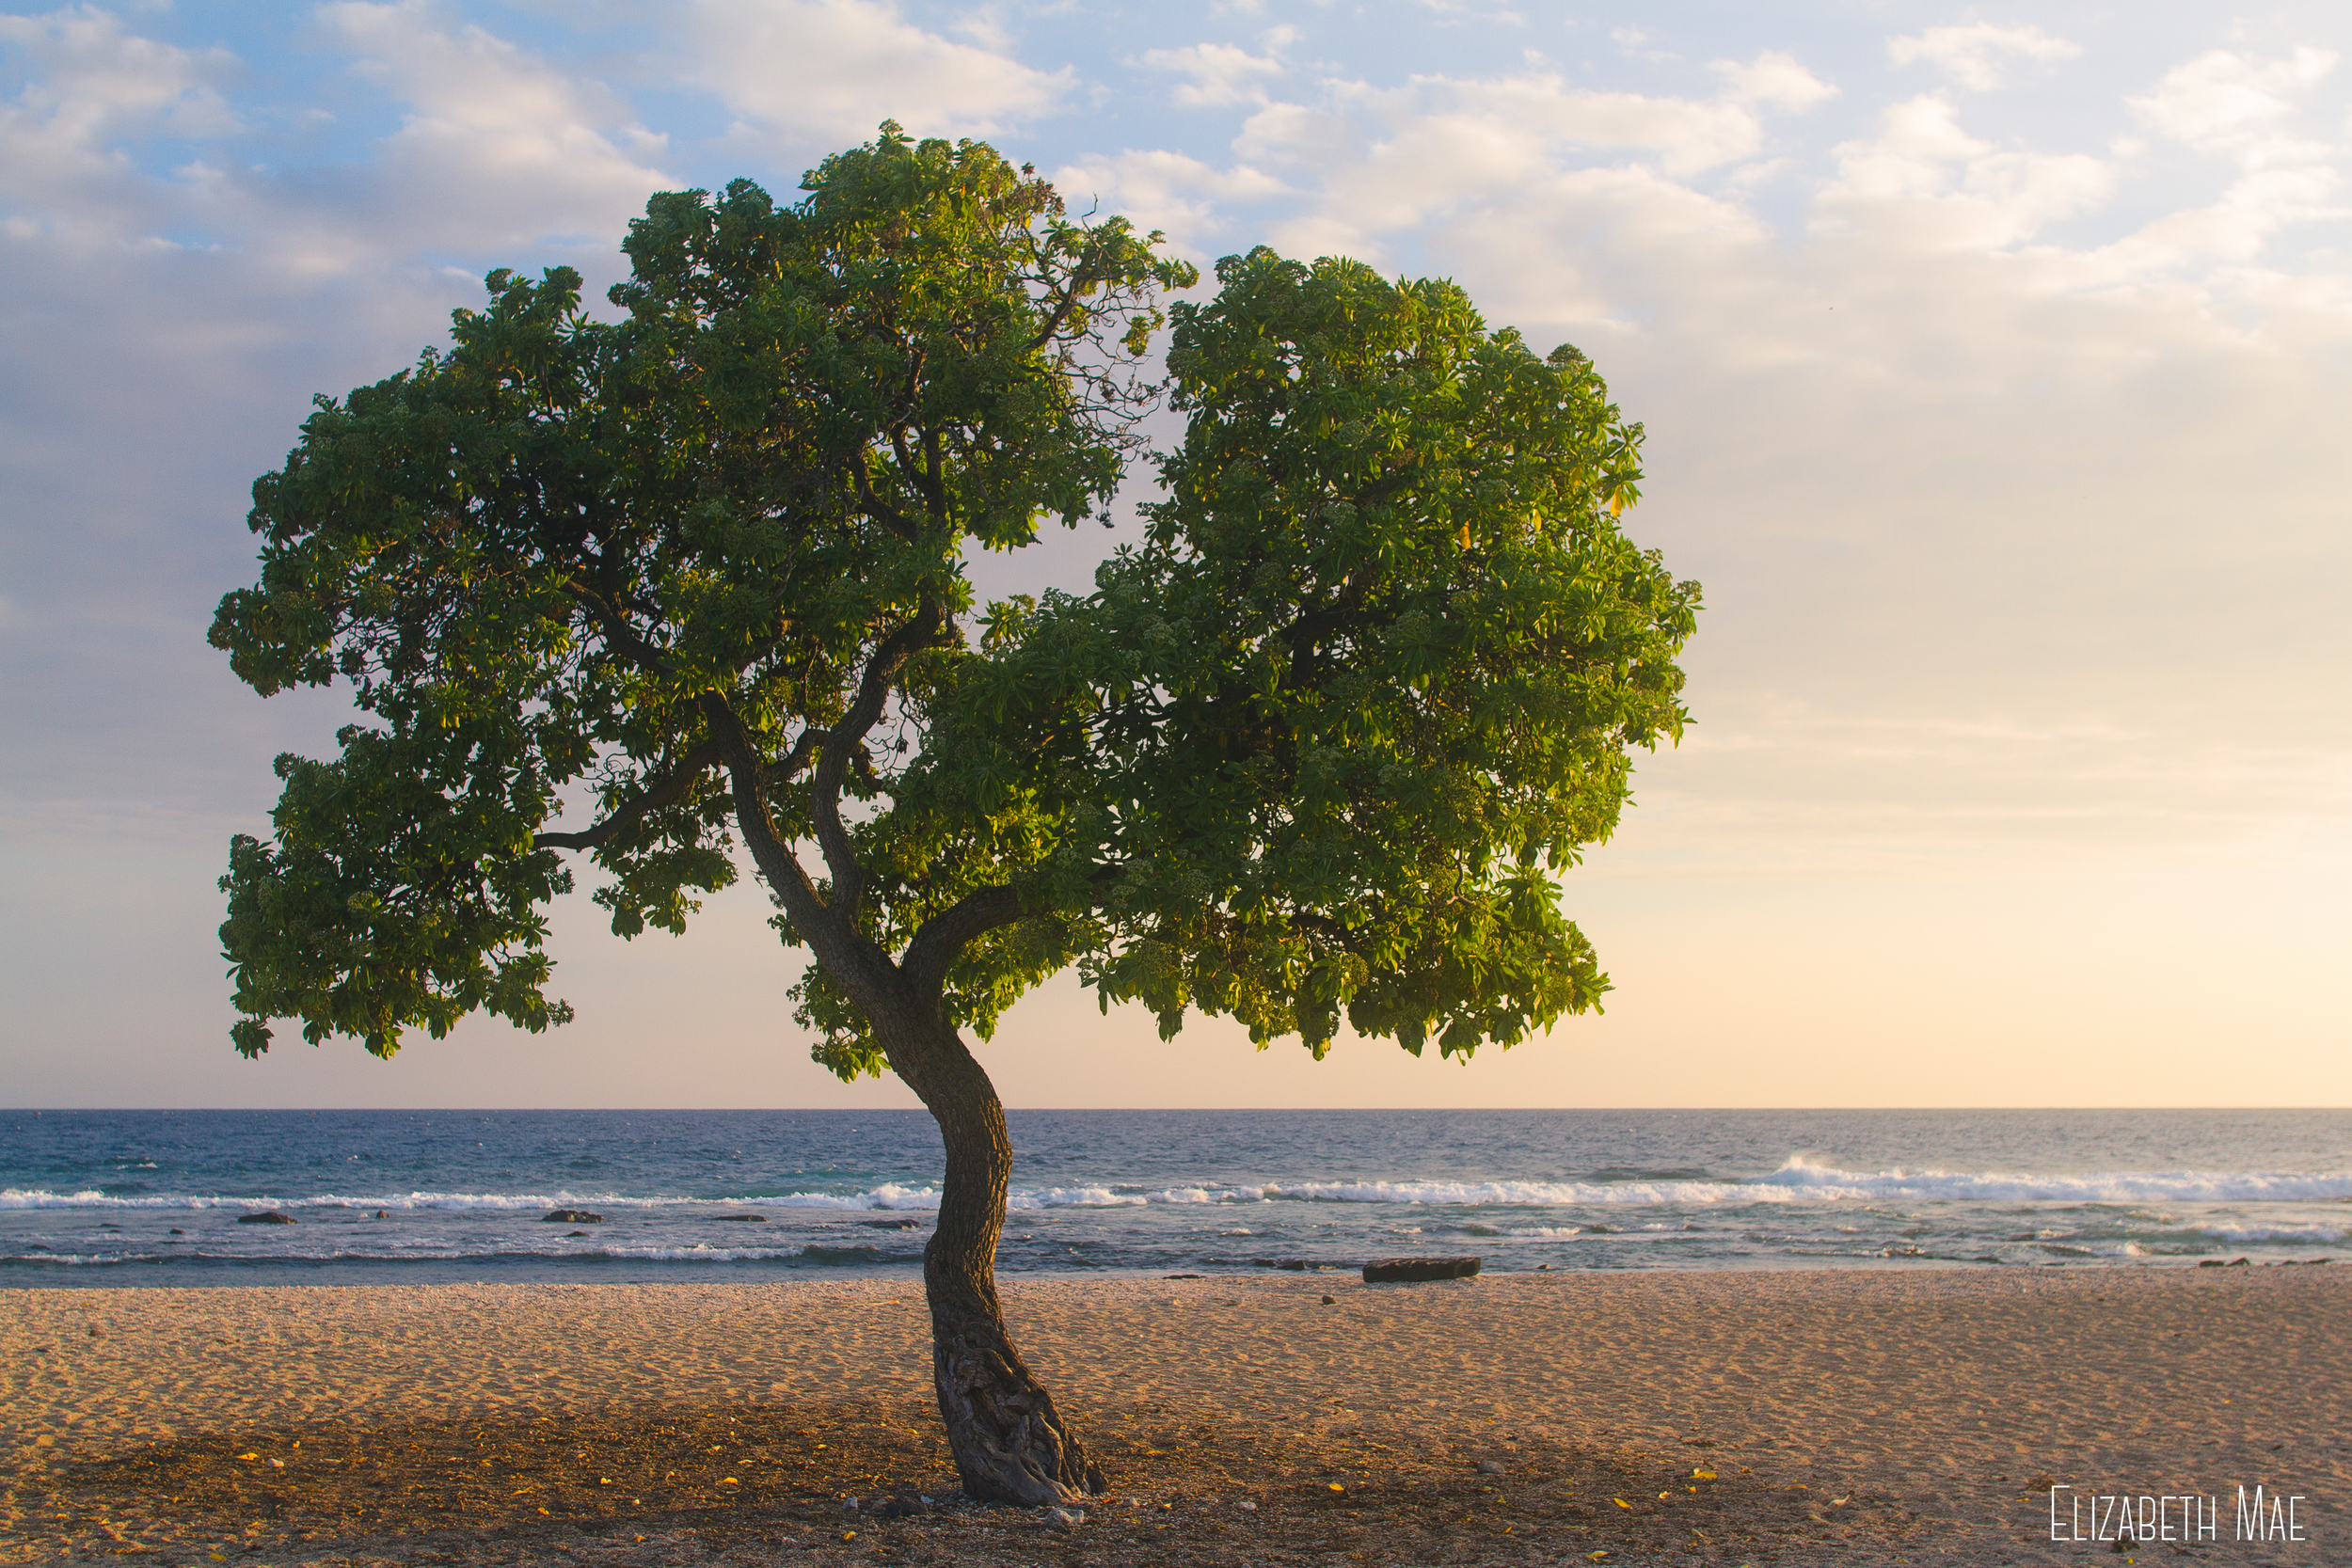 These trees looked so beautiful against the ocean and the sand. It was almost unreal.